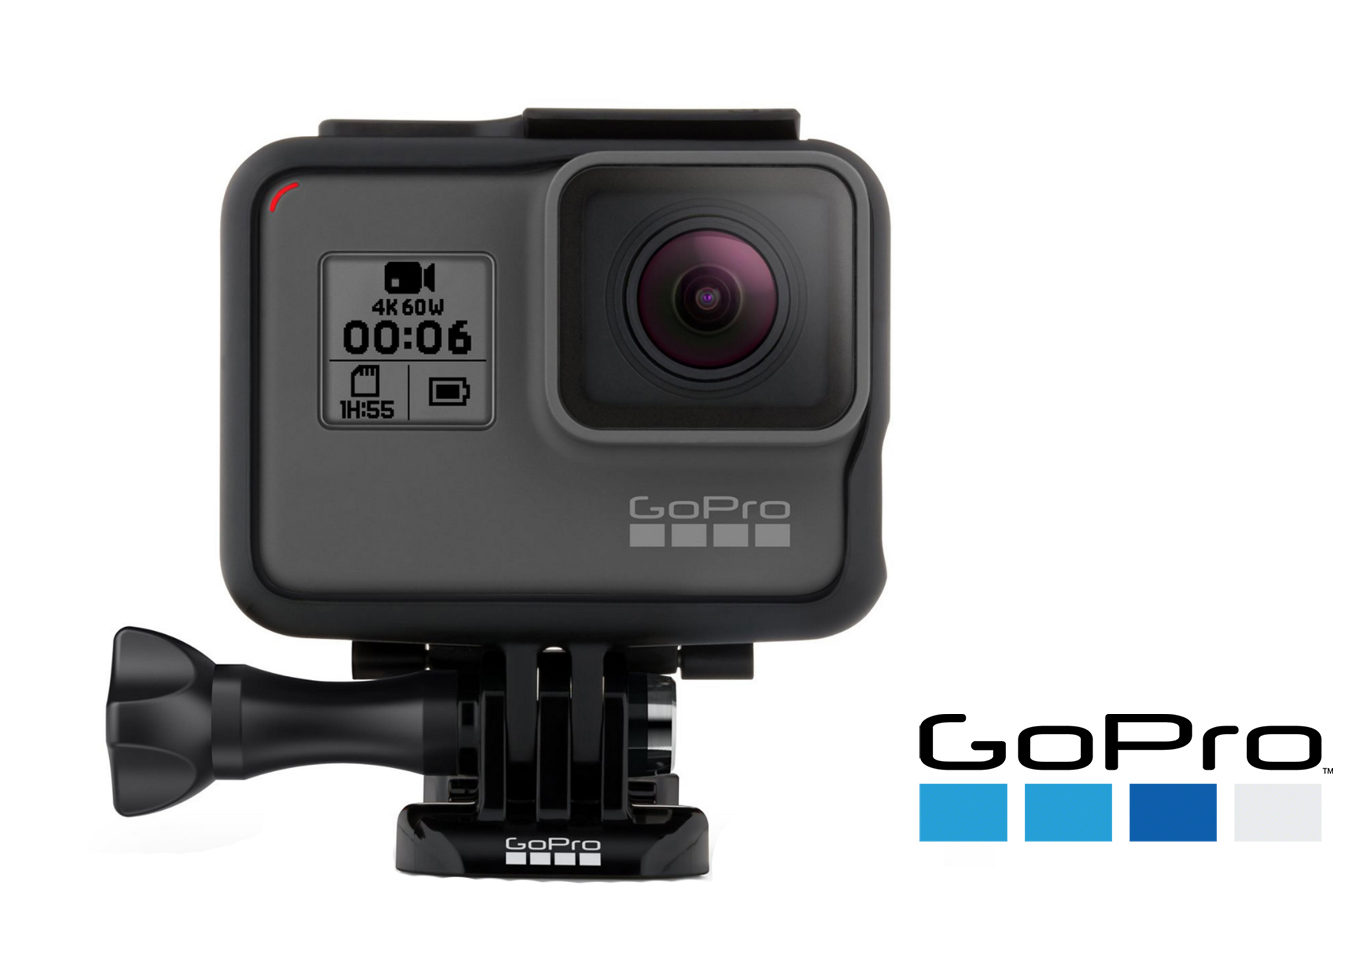 Here's where things went wrong for GoPro in 2017